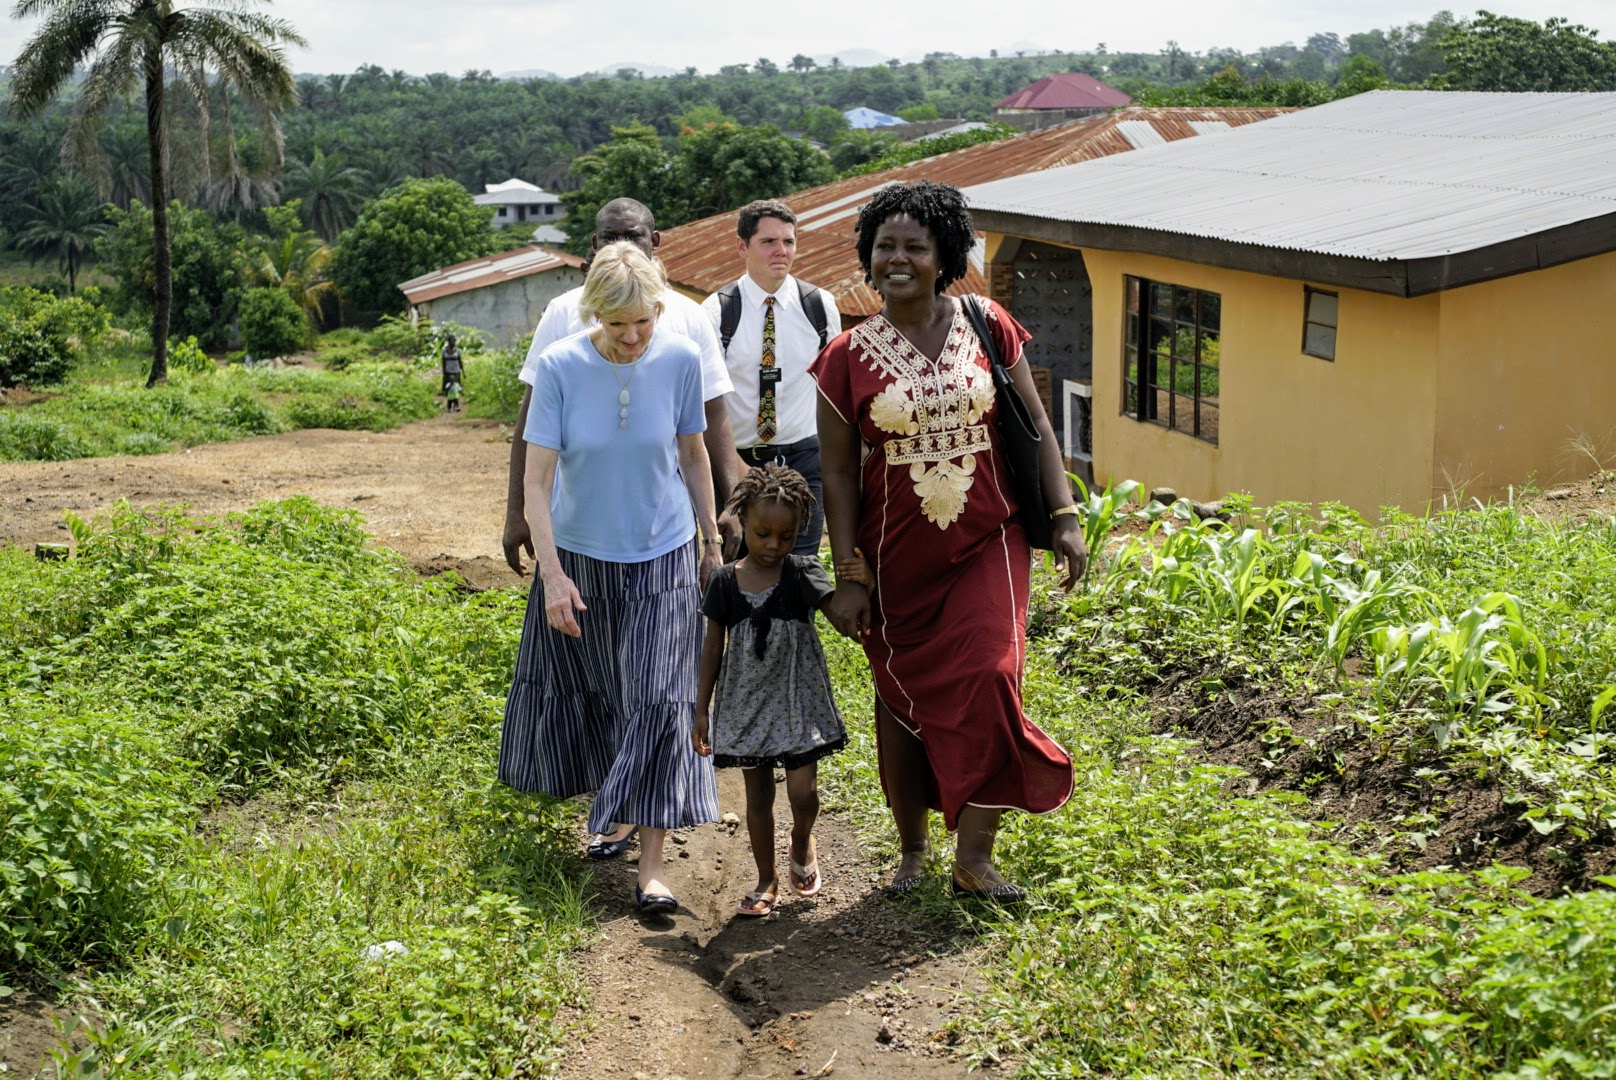 Sister Jean B. Bingham walks with members in Sierra Leone during a recent 11-day trip from June 5 through June 16, 2019, to the West African country.